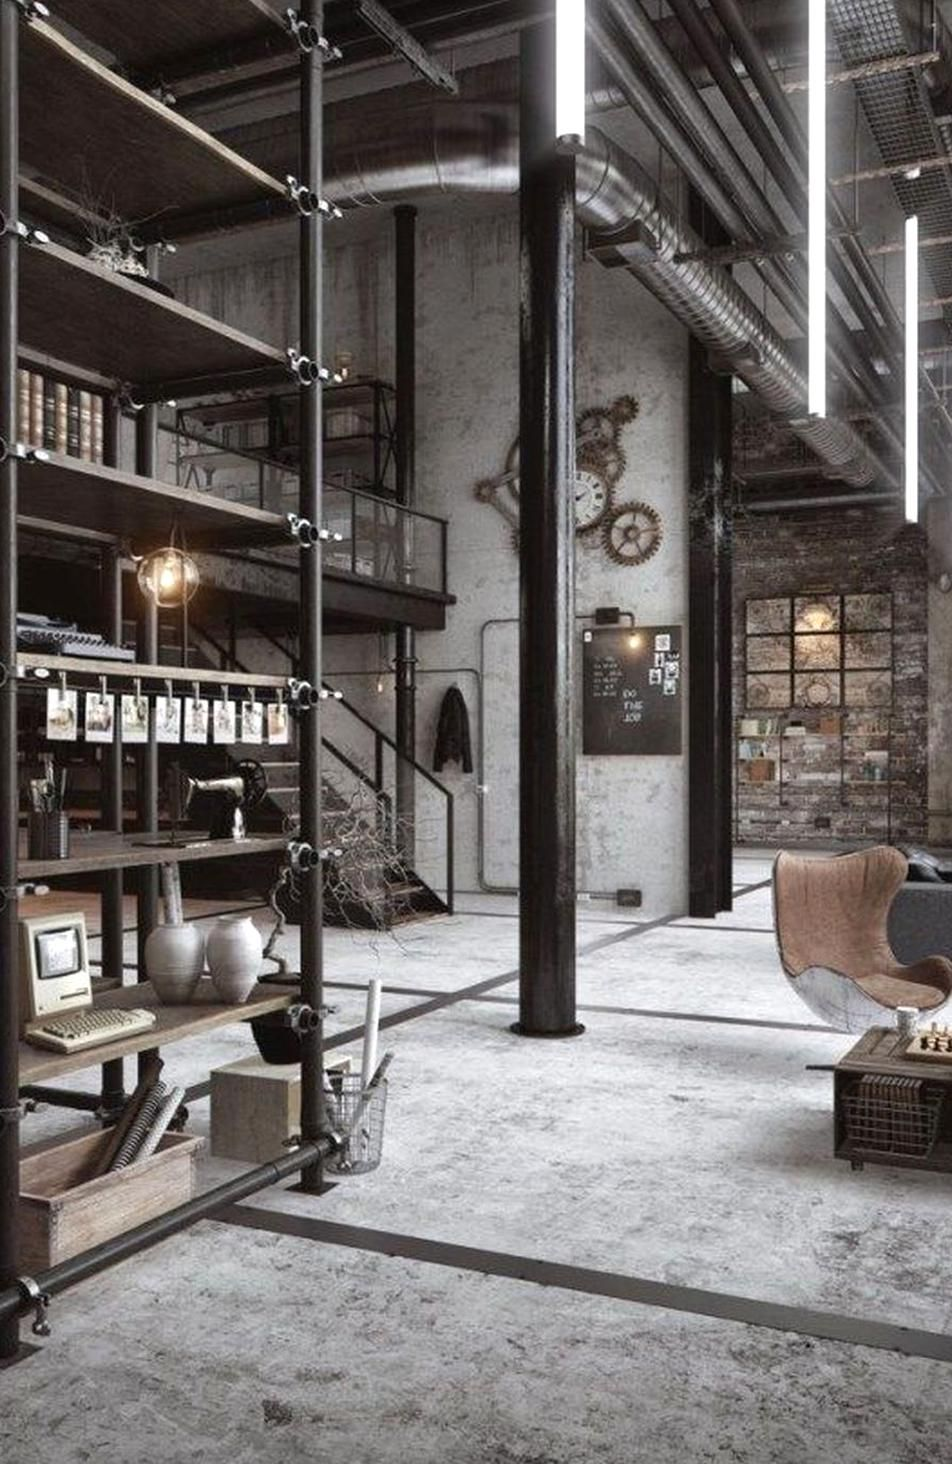 Get The Best Industrial Home Decor Ideas Visit Us For Industrial Style Interior Design Industrial Chic Dec In 2020 Loft Decor Industrial Chic Decor Industrial Loft